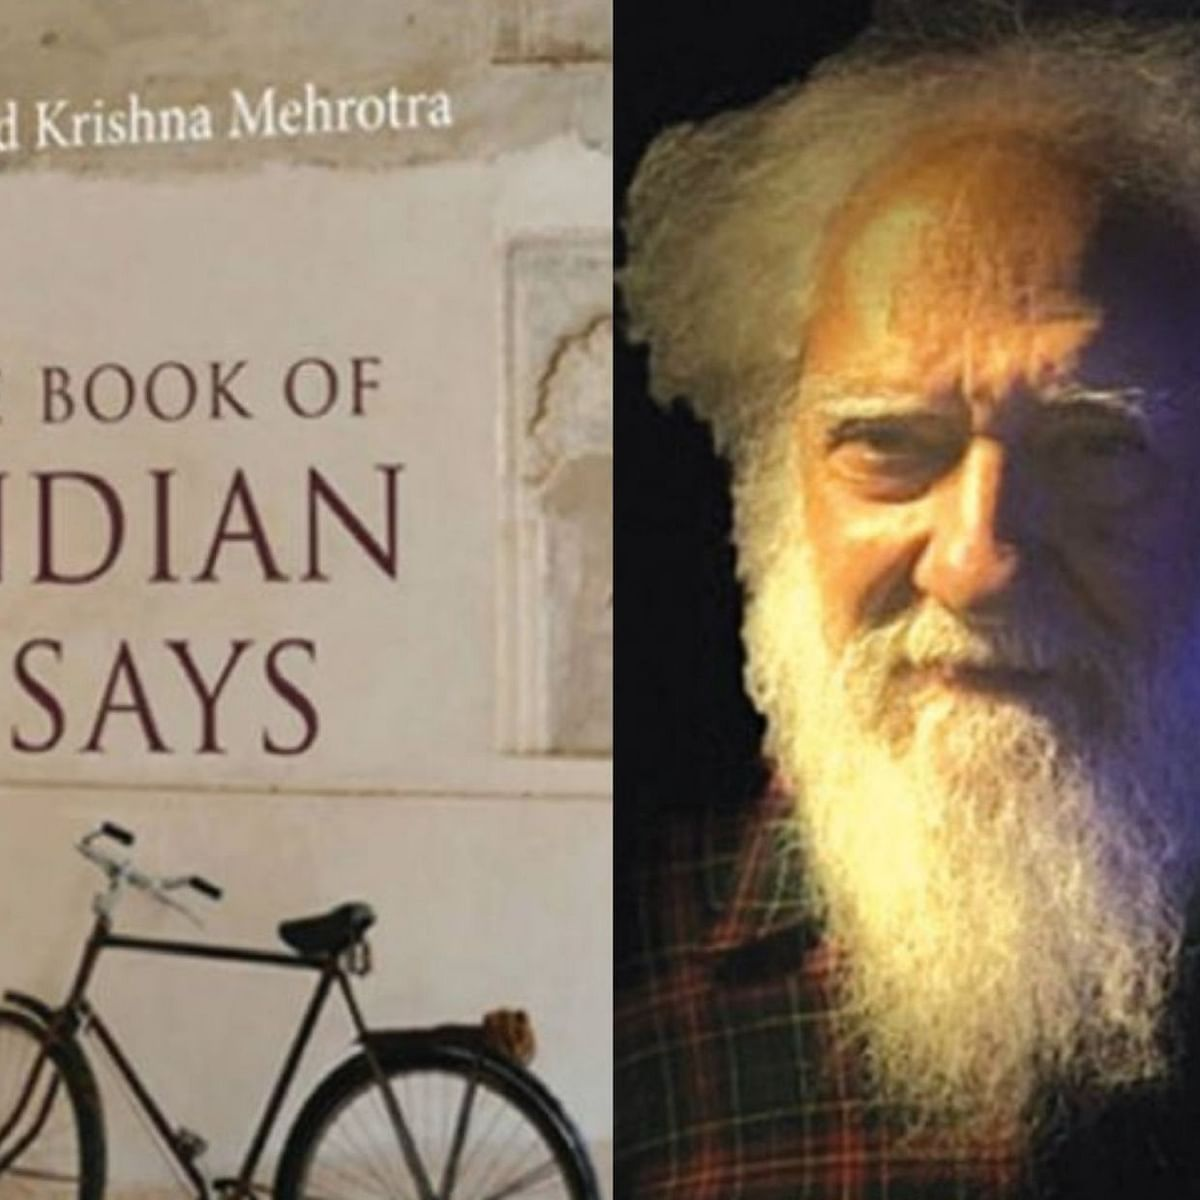 An anthology compiles 200 years of 'Indian' prose and poetry in English